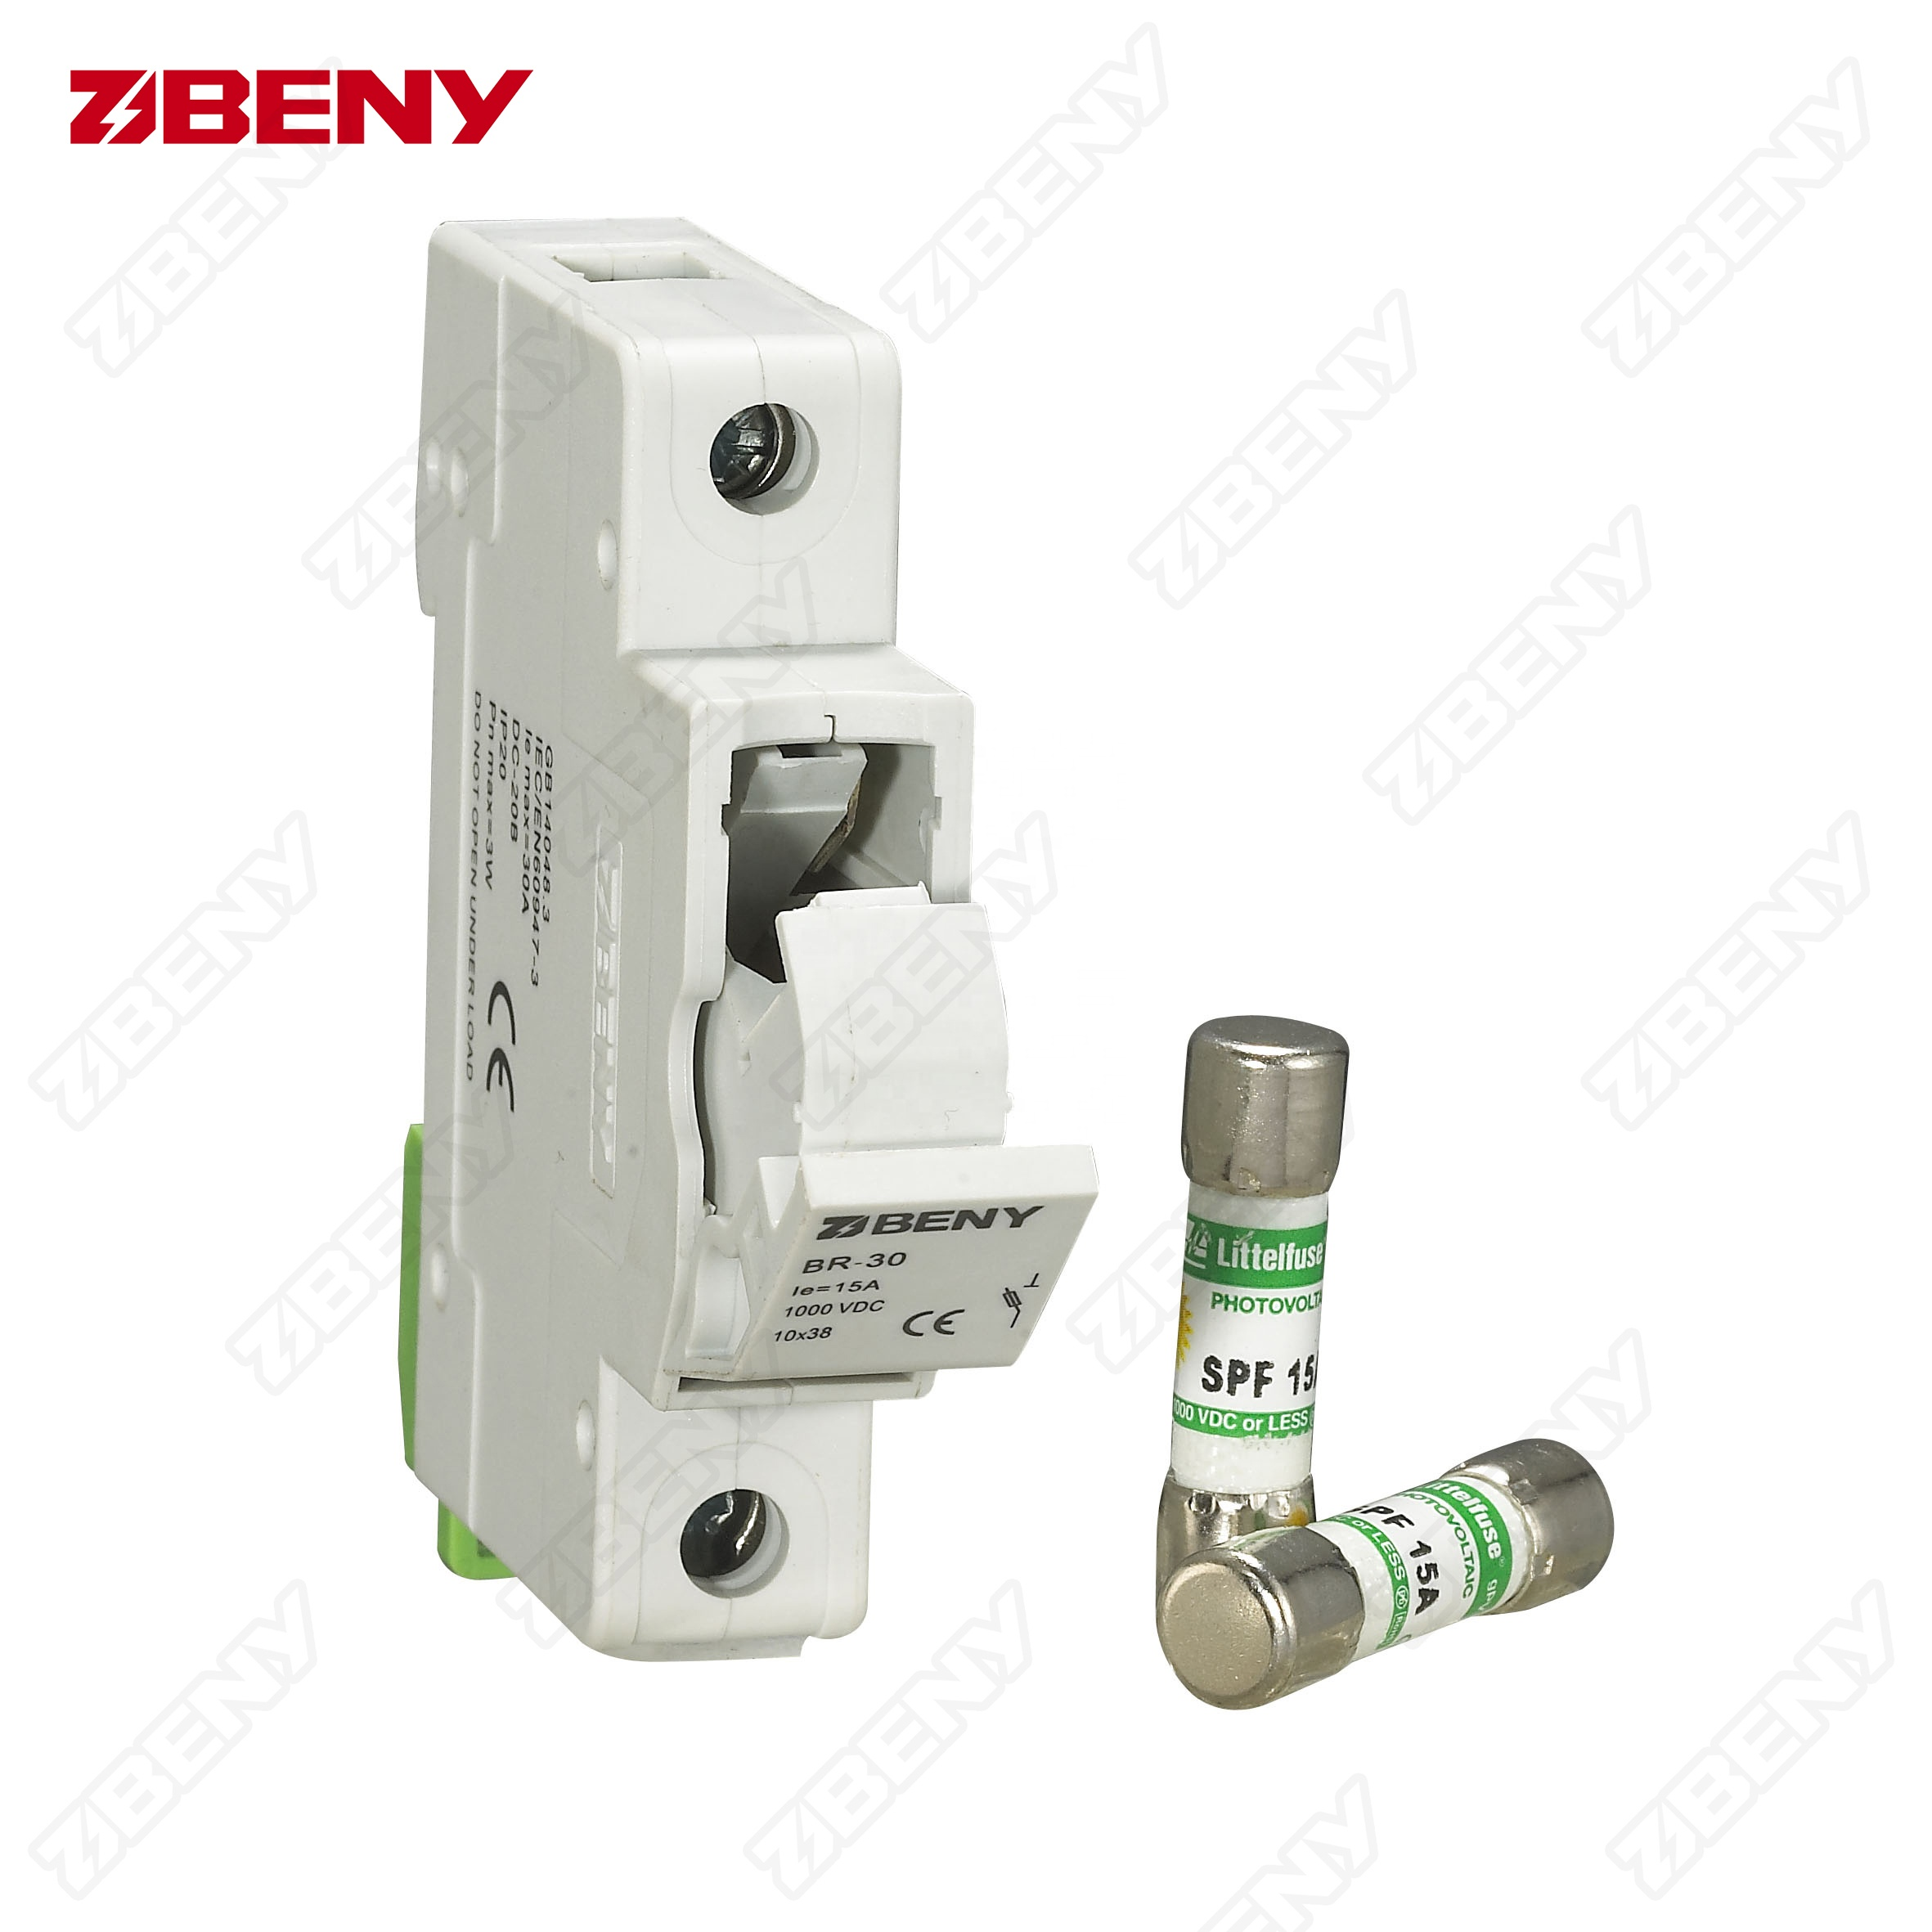 1000V DC fuse holder for solar system, View fuse holder, ZJBENY Product  Details from Zhejiang Benyi Electrical Co., Ltd. on Alibaba.com | Pv Fuse Box |  | Zhejiang Benyi Electrical Co., Ltd. - Alibaba.com